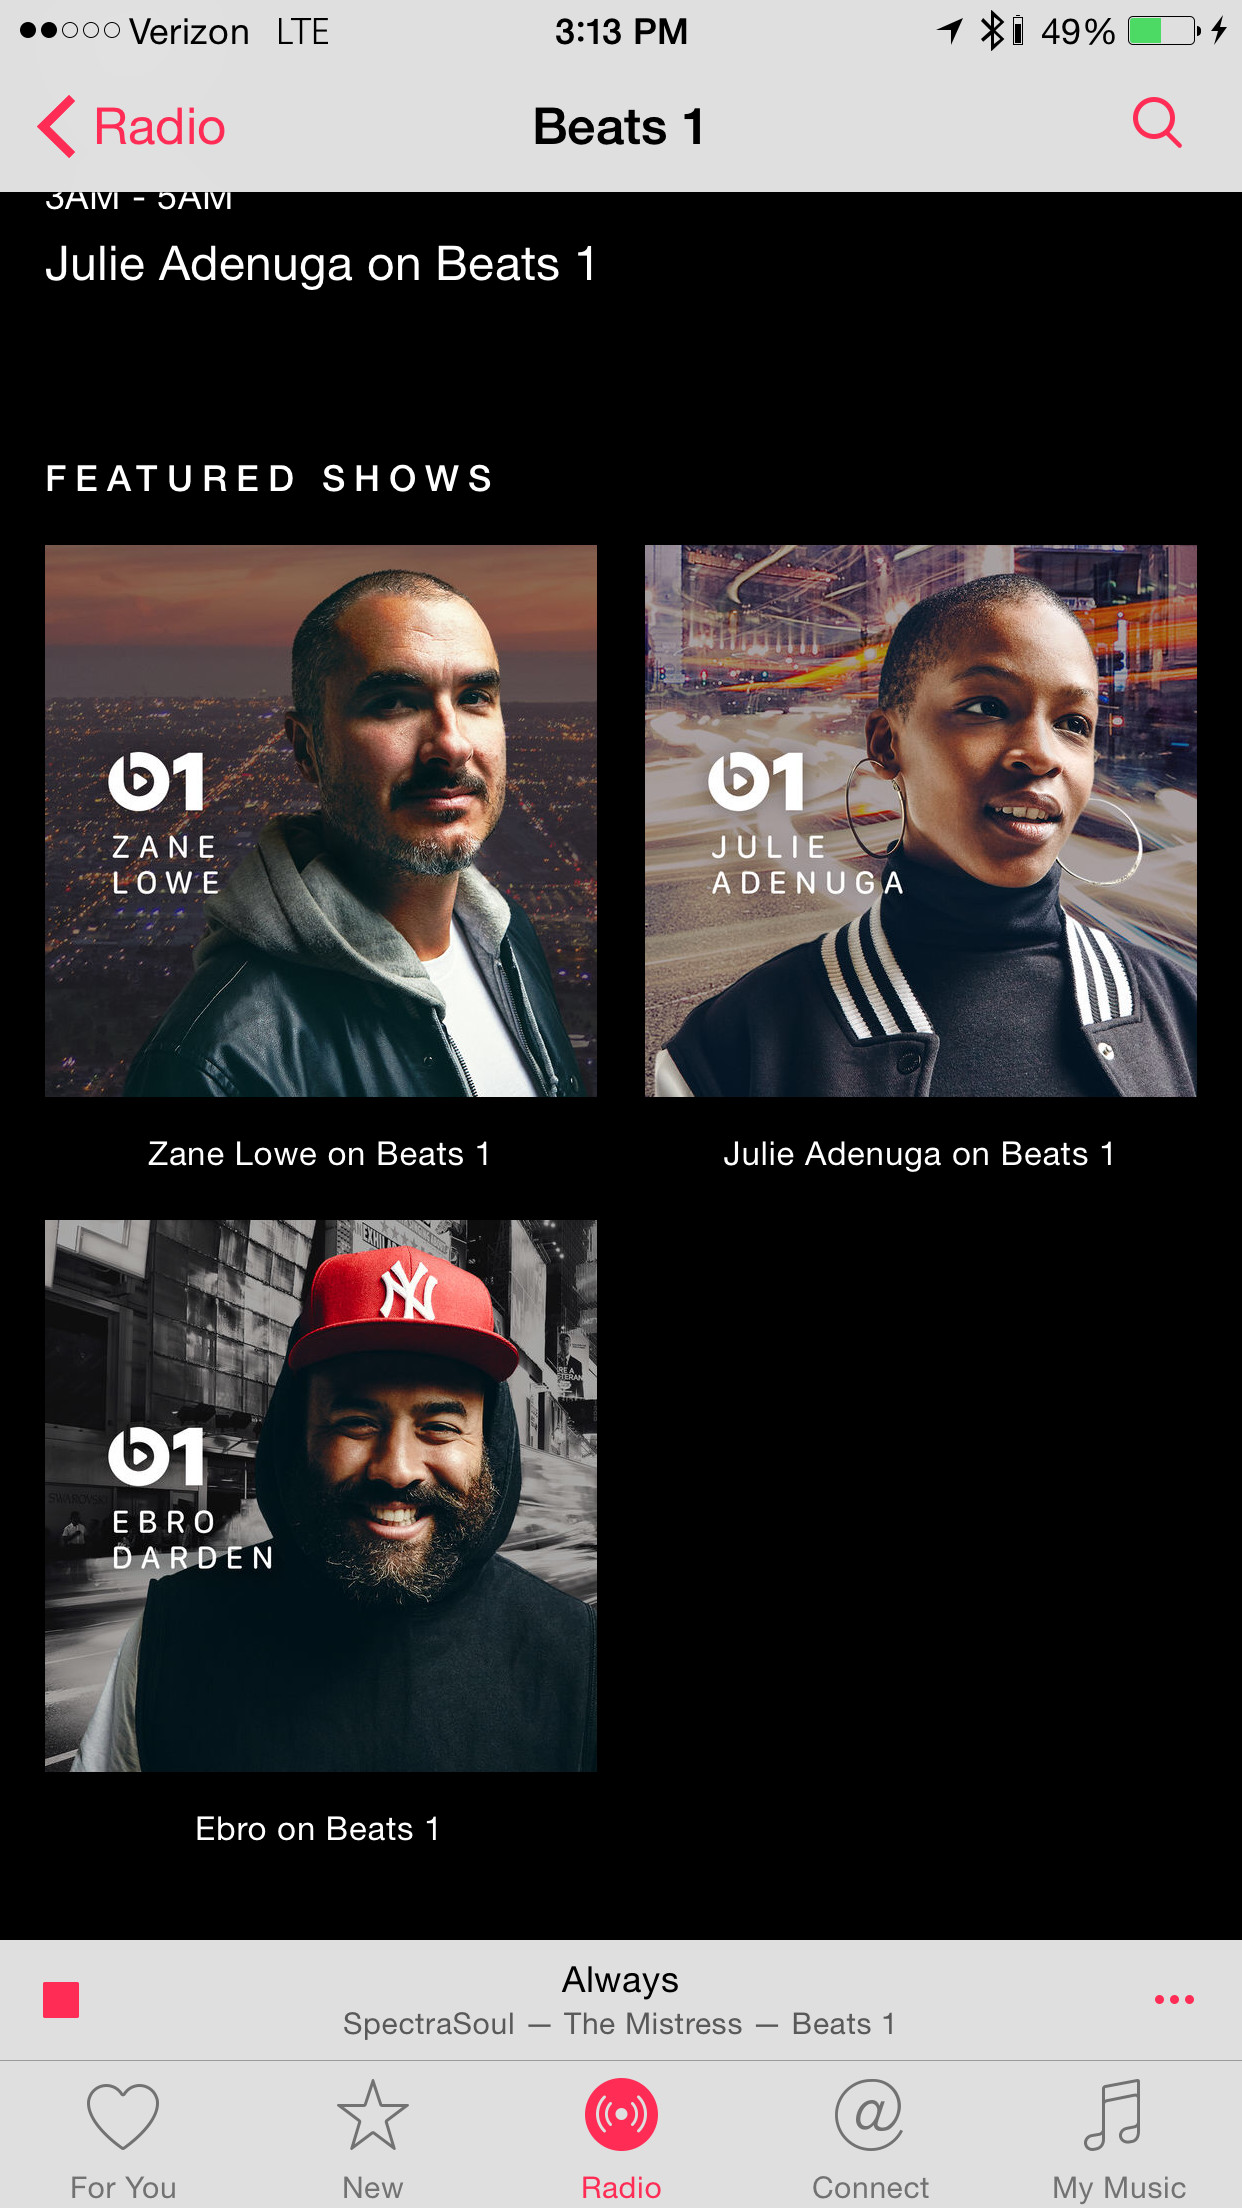 Beats 1 featured shows